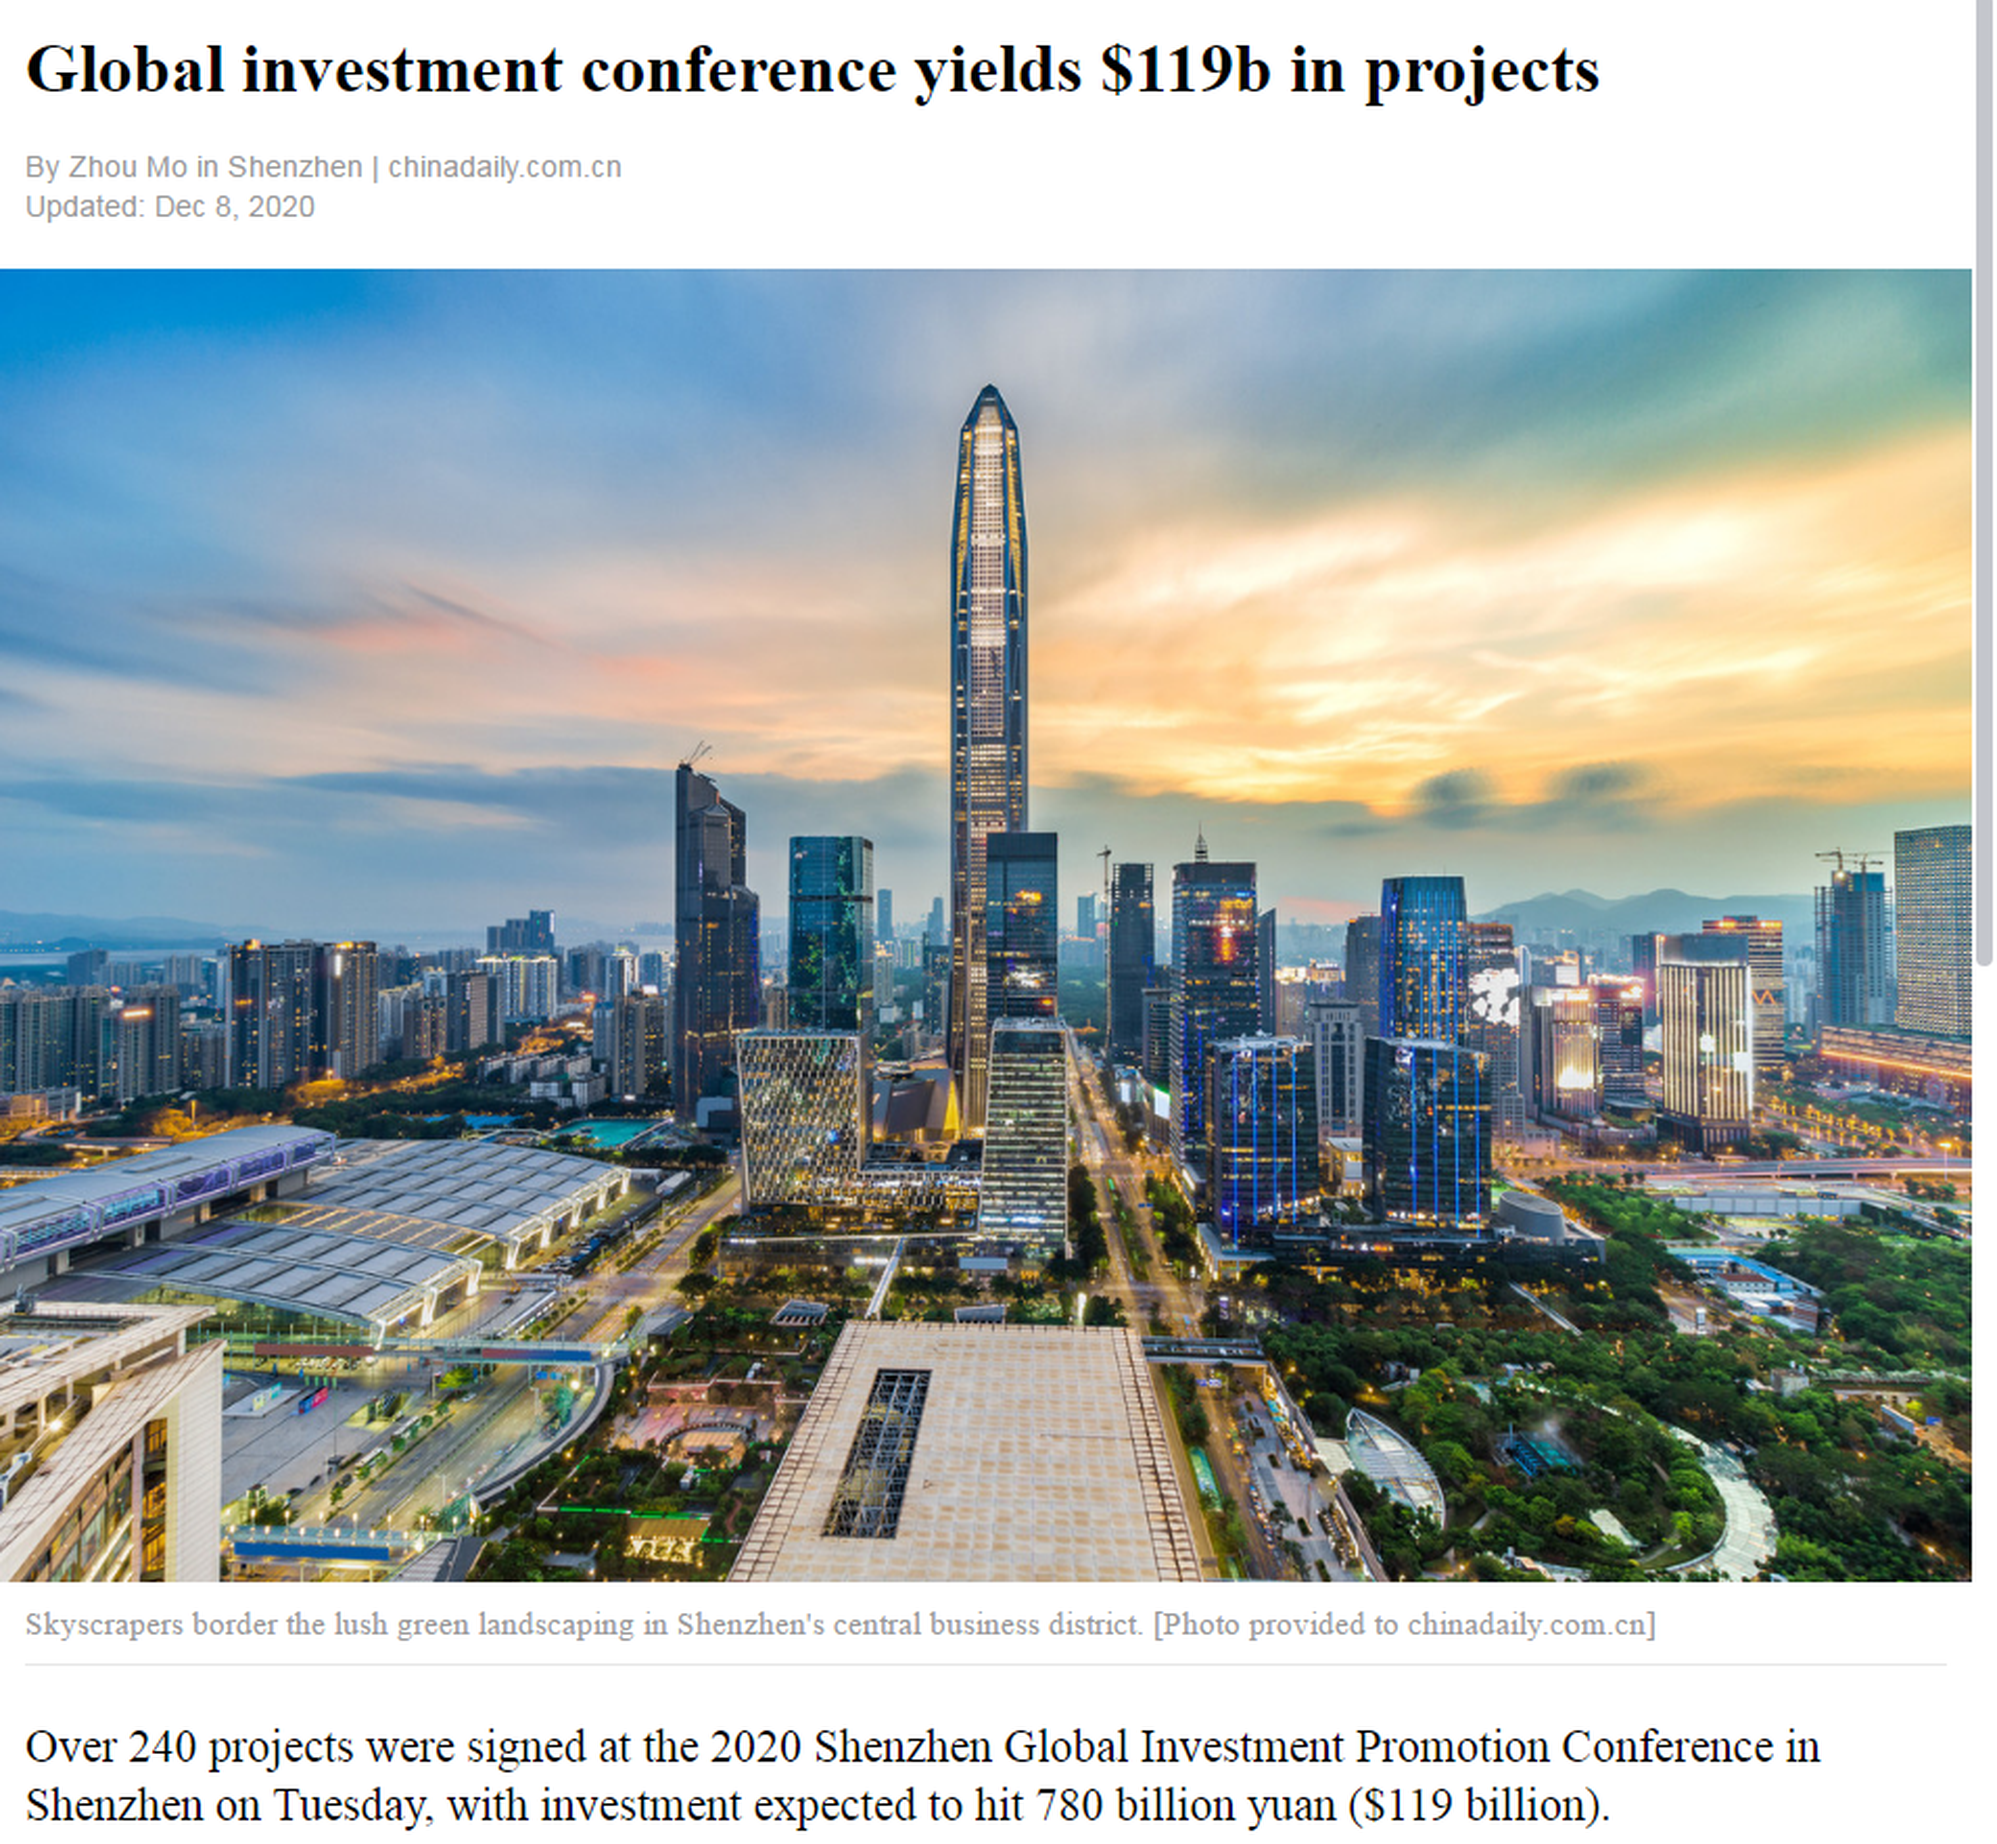 Global investment conference yields $119b in projects